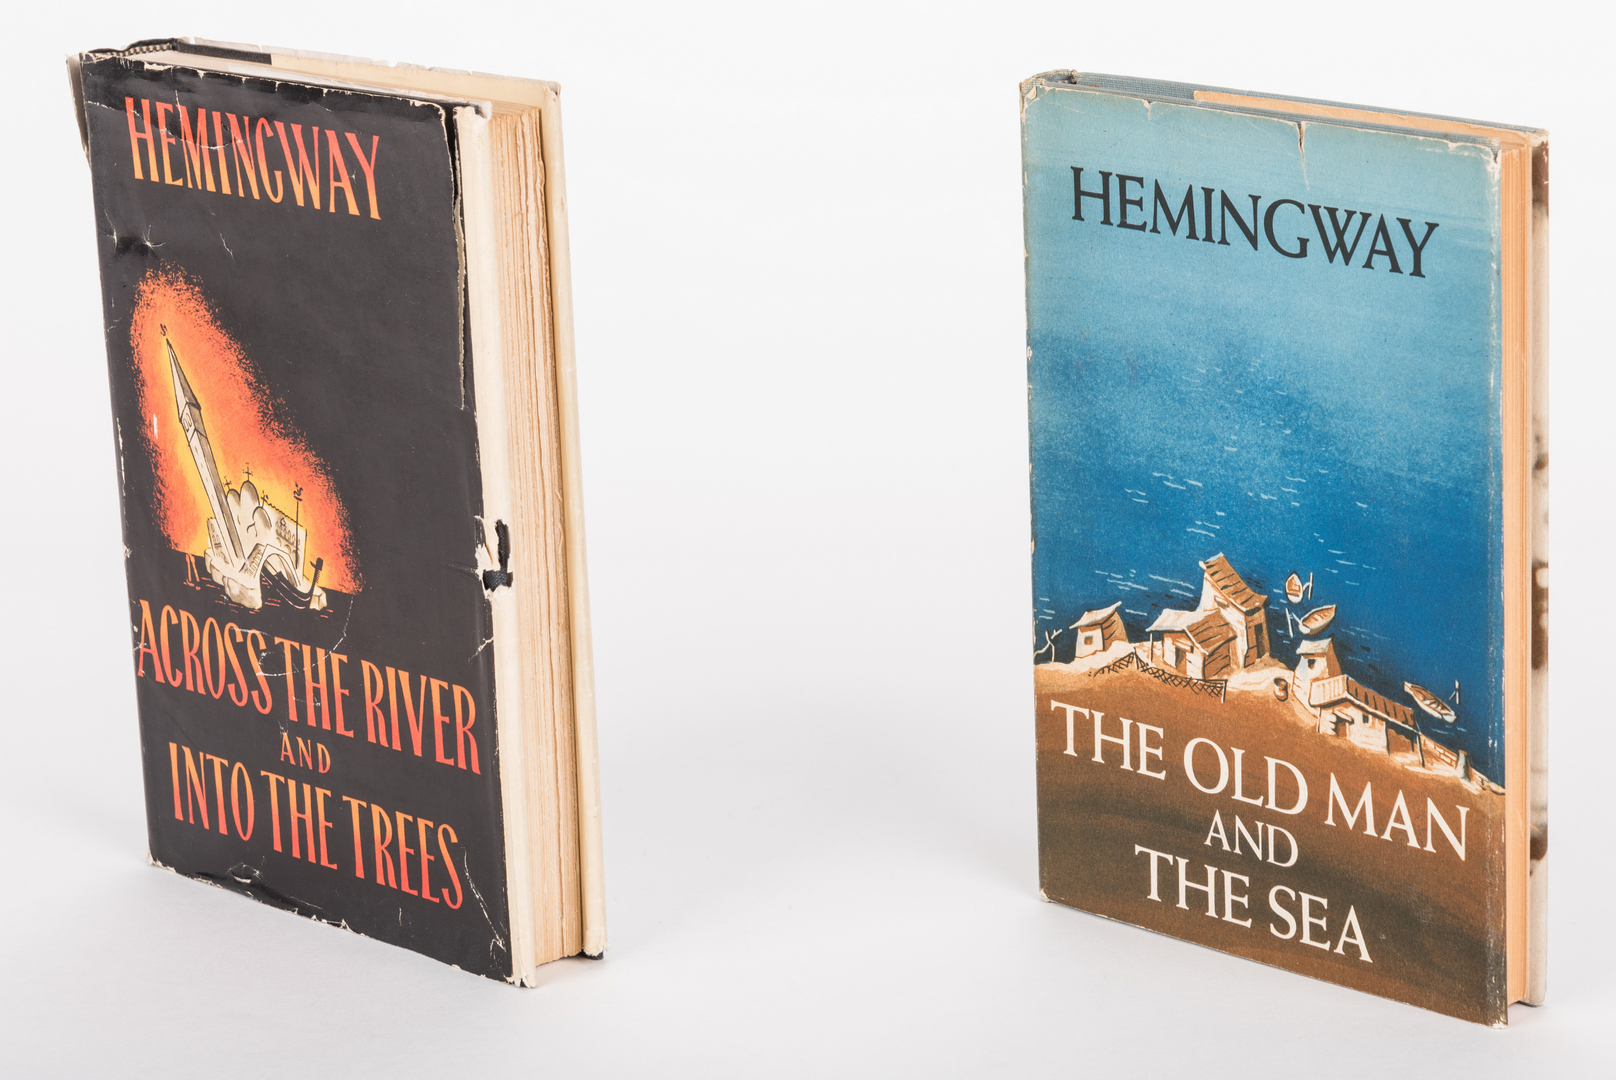 ernest hemingways personal experience incorporated into in another country In his 62 years of existence, ernest hemingway would transform the places of his life into unique landscapes, mythical realms in which fiction and lived experience combined, sometimes indistinguishably.